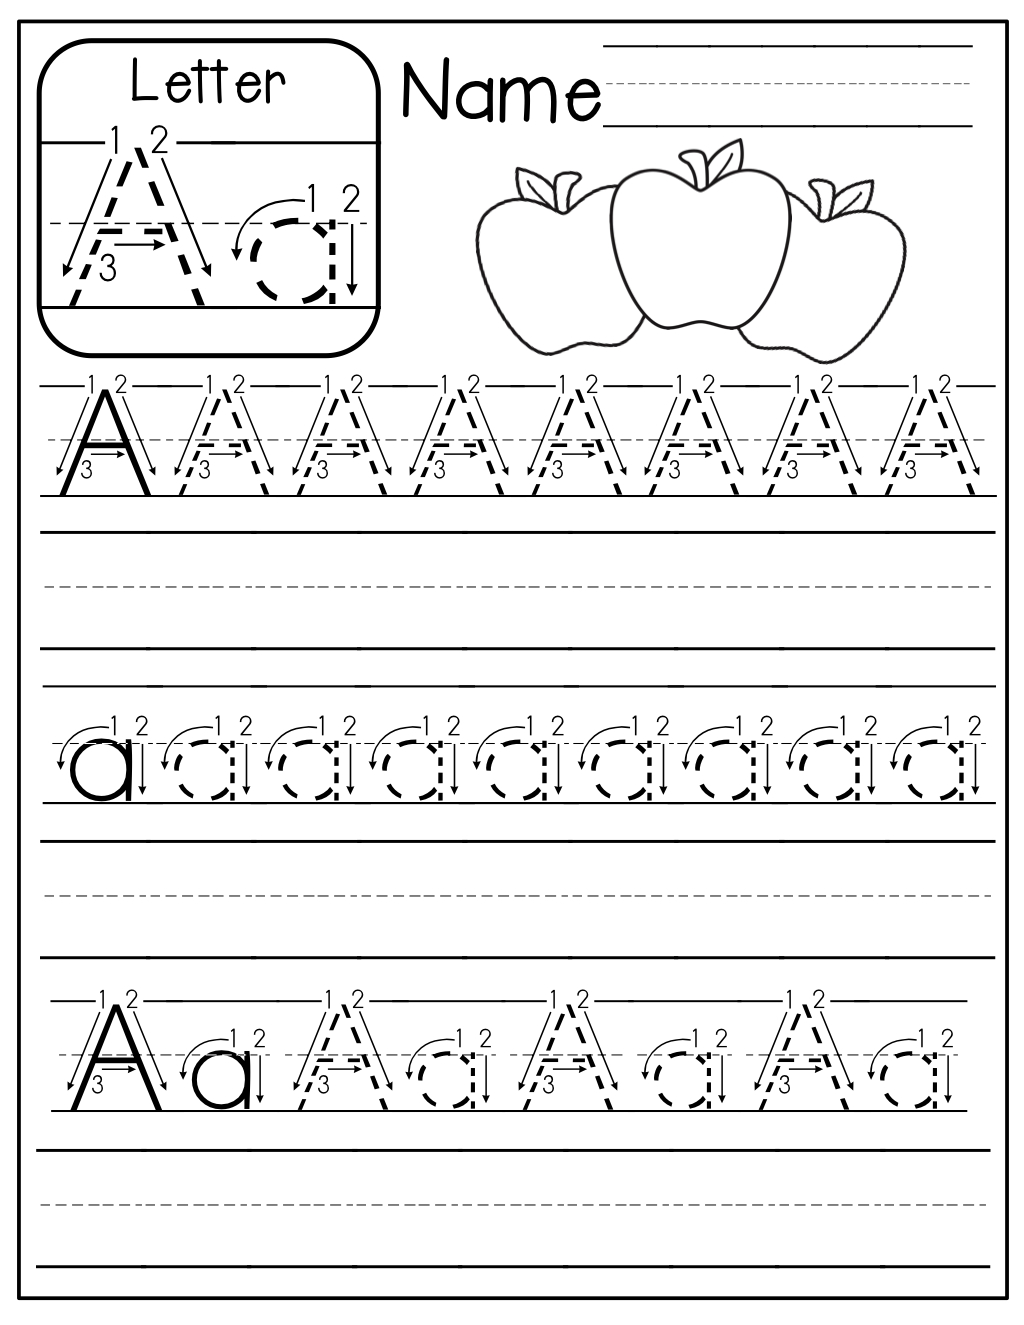 Freebie: A-Z Handwriting Practice Pages! | Kindergarten regarding A To Z Name Tracing Worksheets